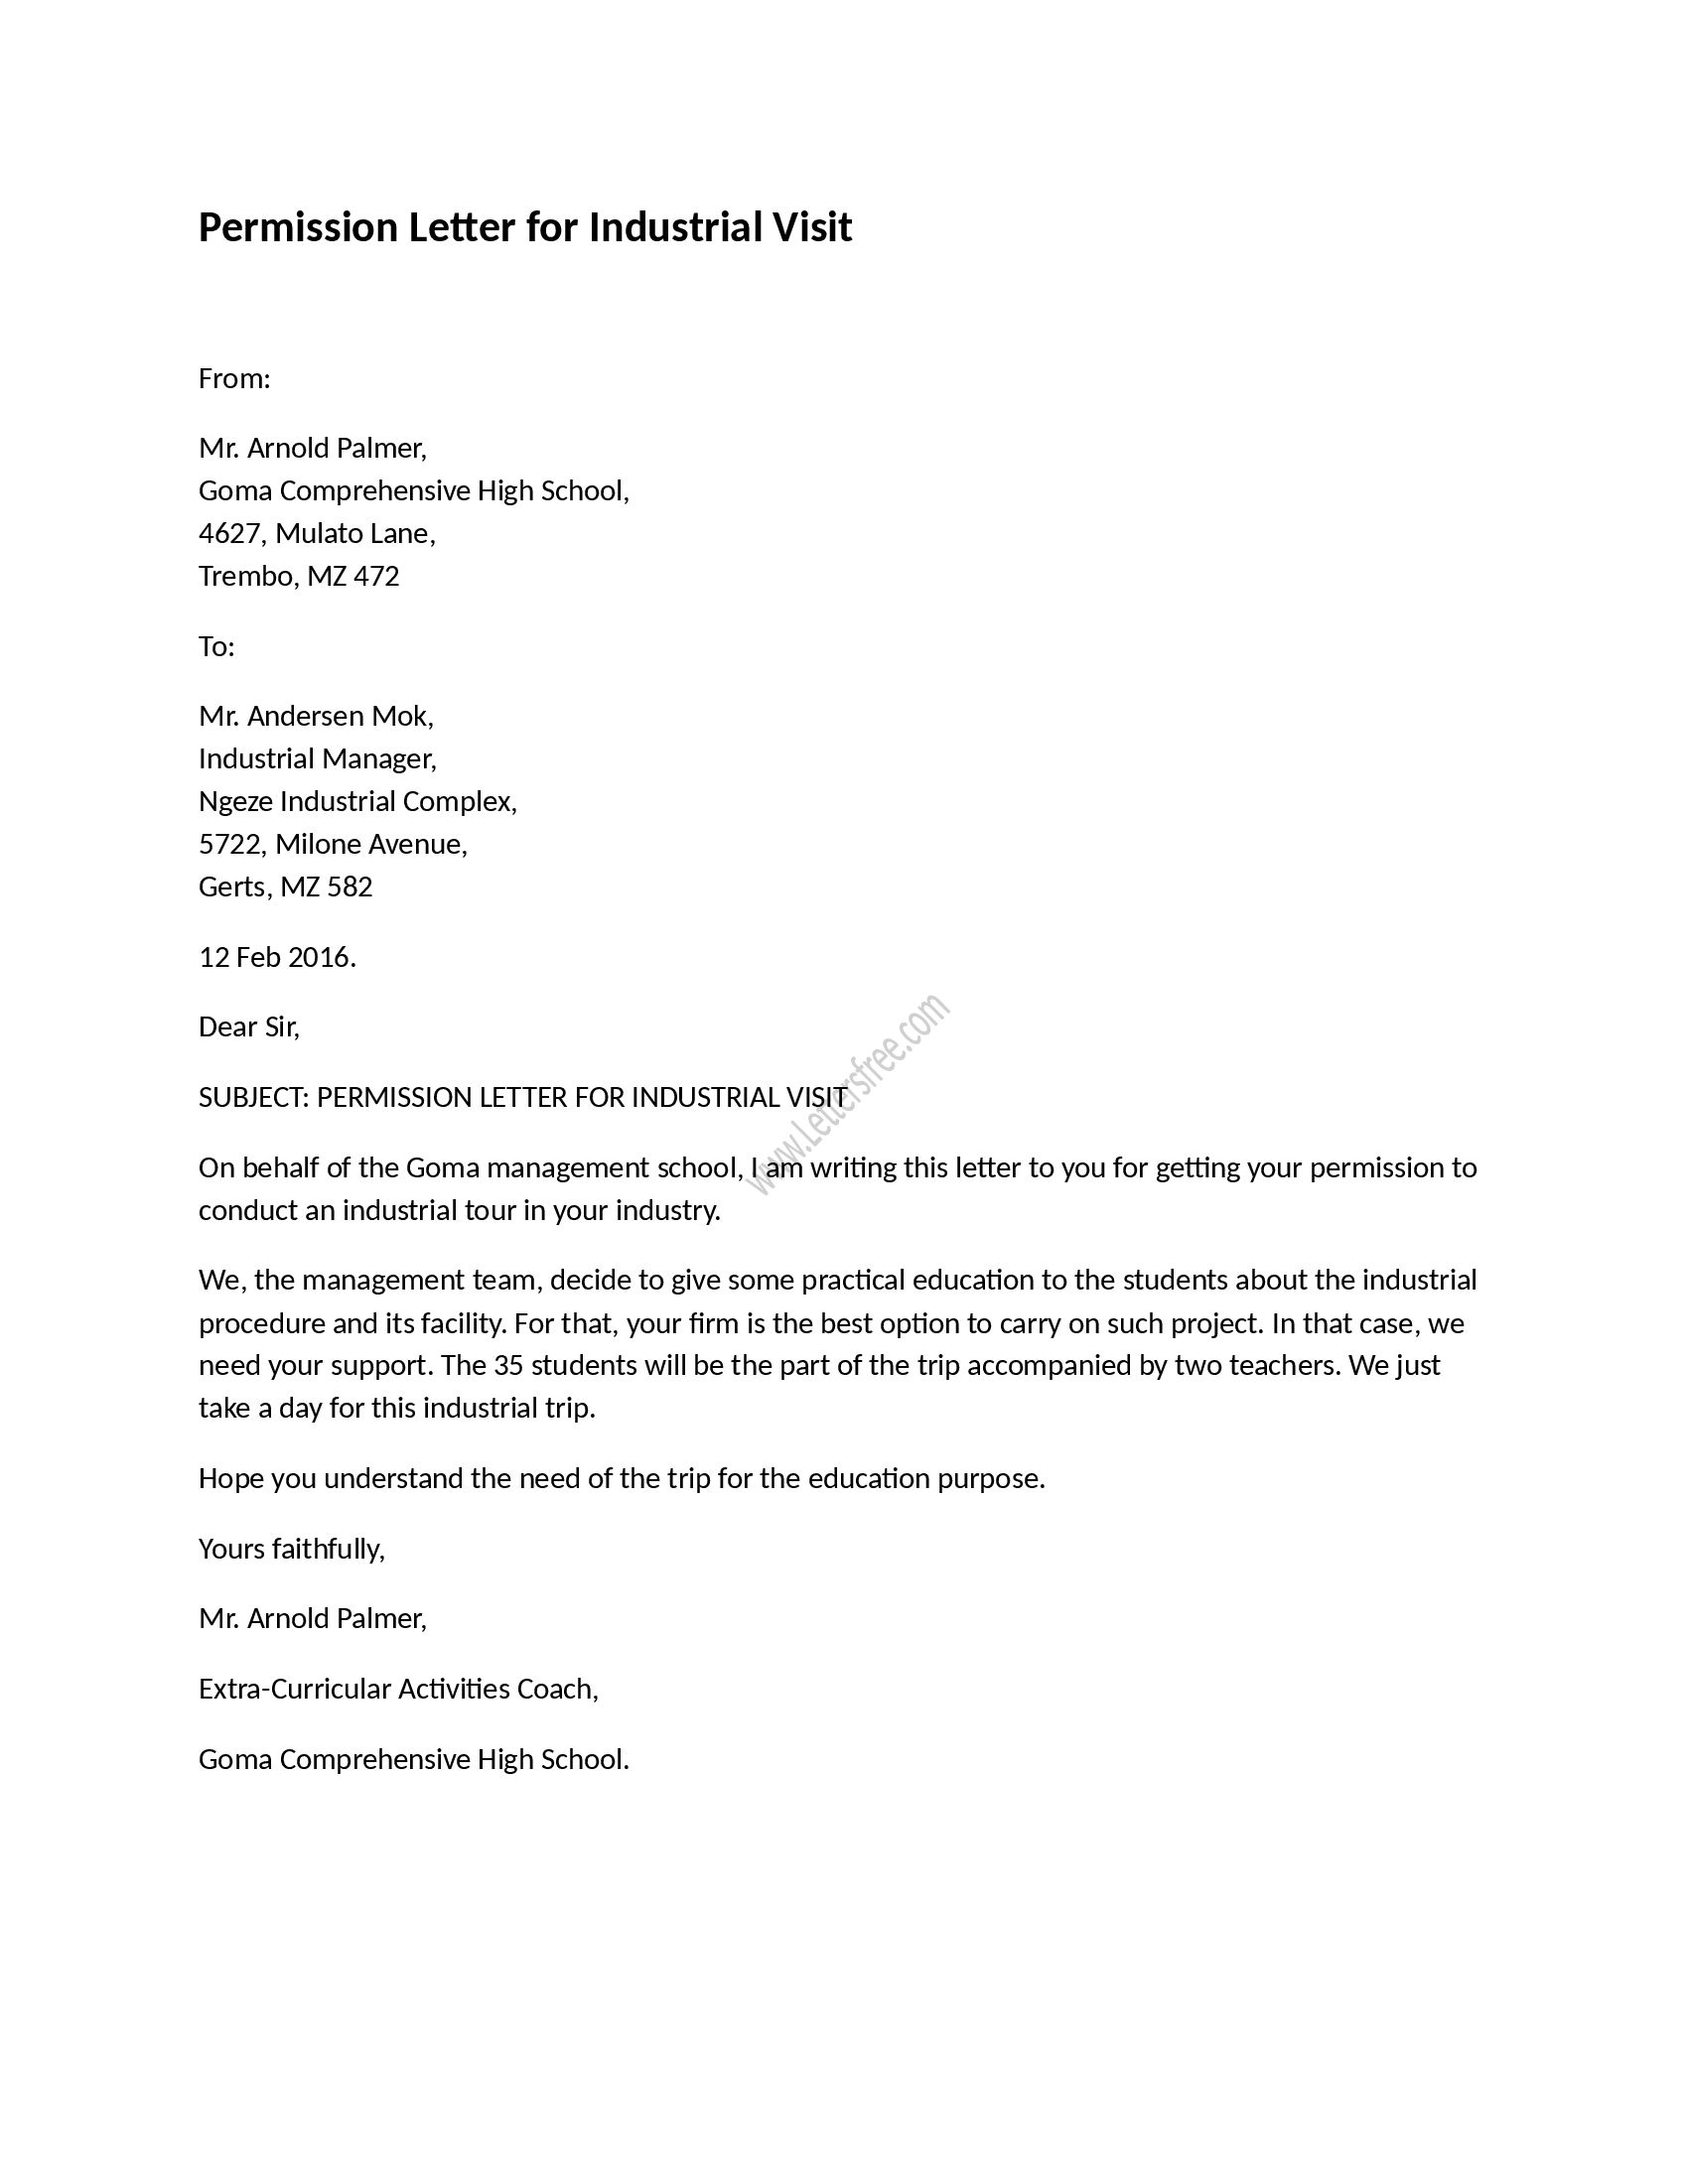 Permission letter for industrial visit sample permission letters example of permission letter for industrial visit as its name says is written for seeking the permission of an industrial visit as a part of the altavistaventures